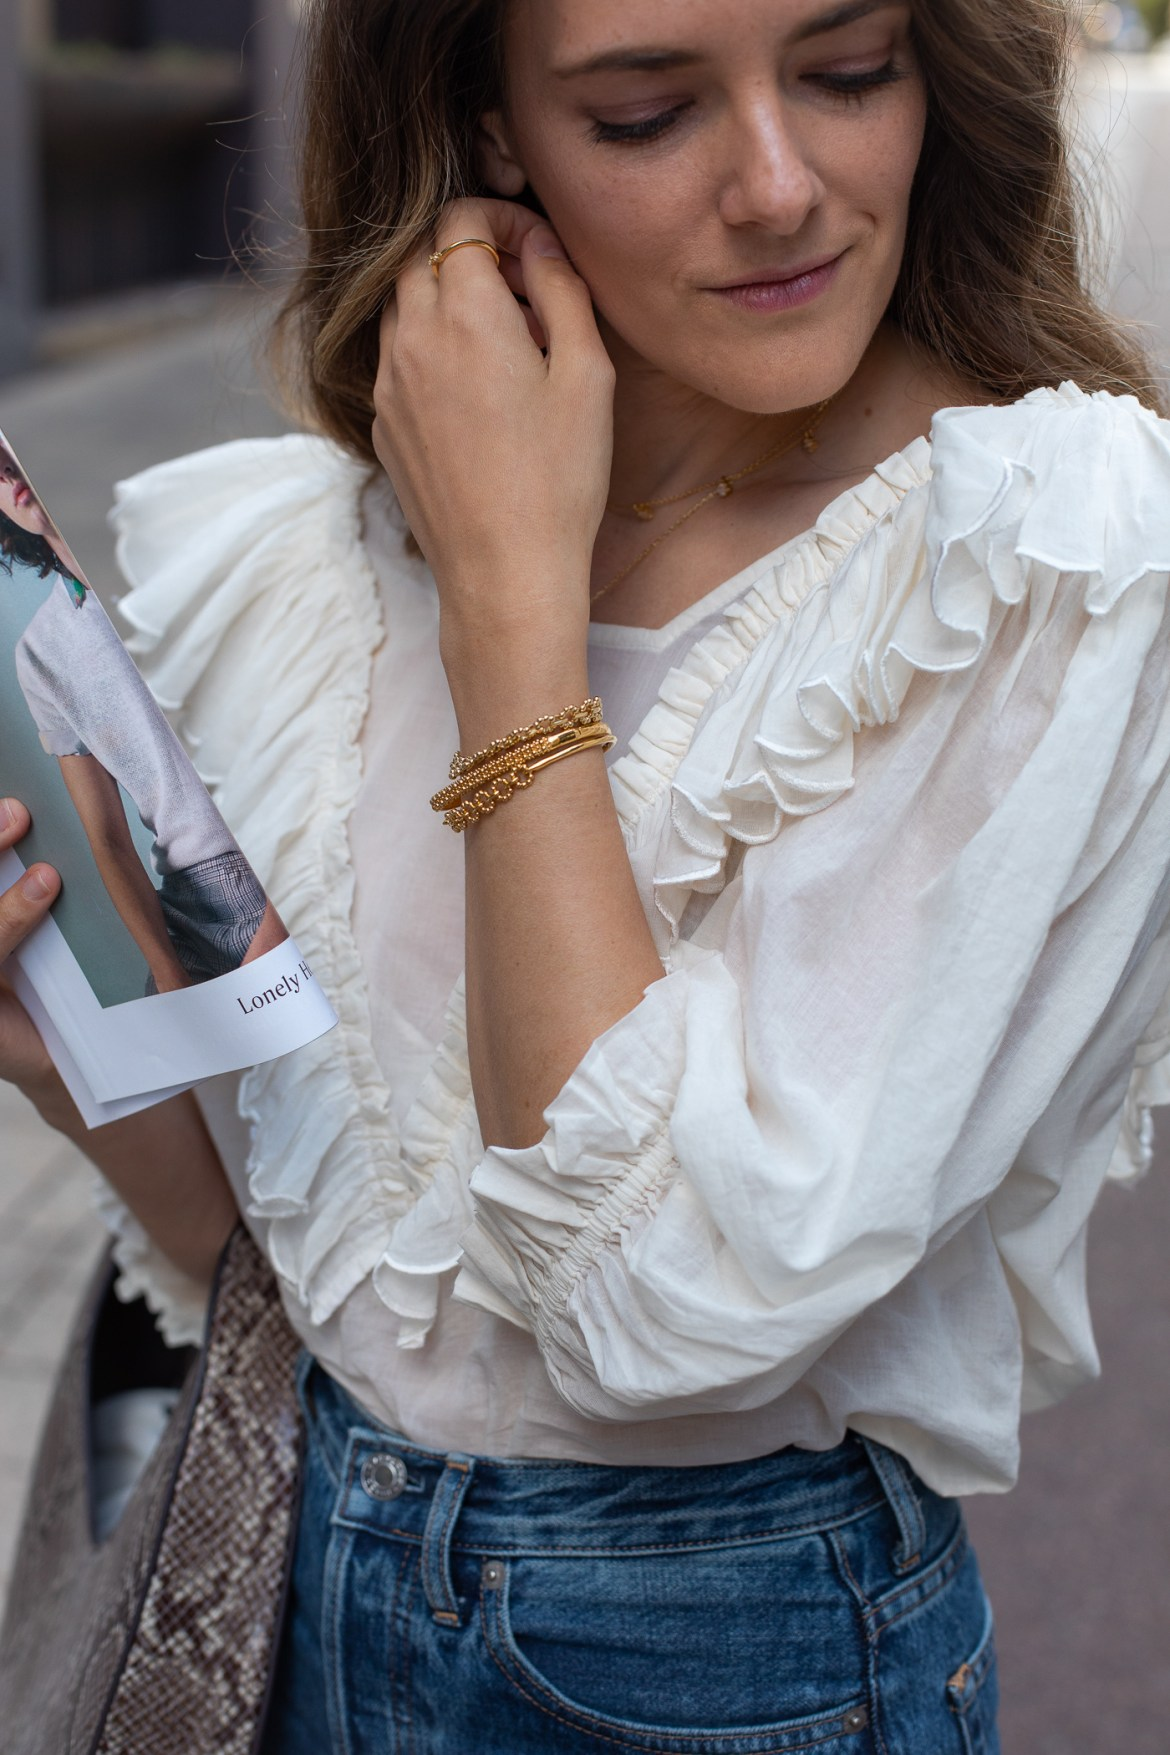 ruffle detail on Innika Choo blouse worn by luxury fashion blogger from Australia Jenelle Witty of the blog Inspiring Wit